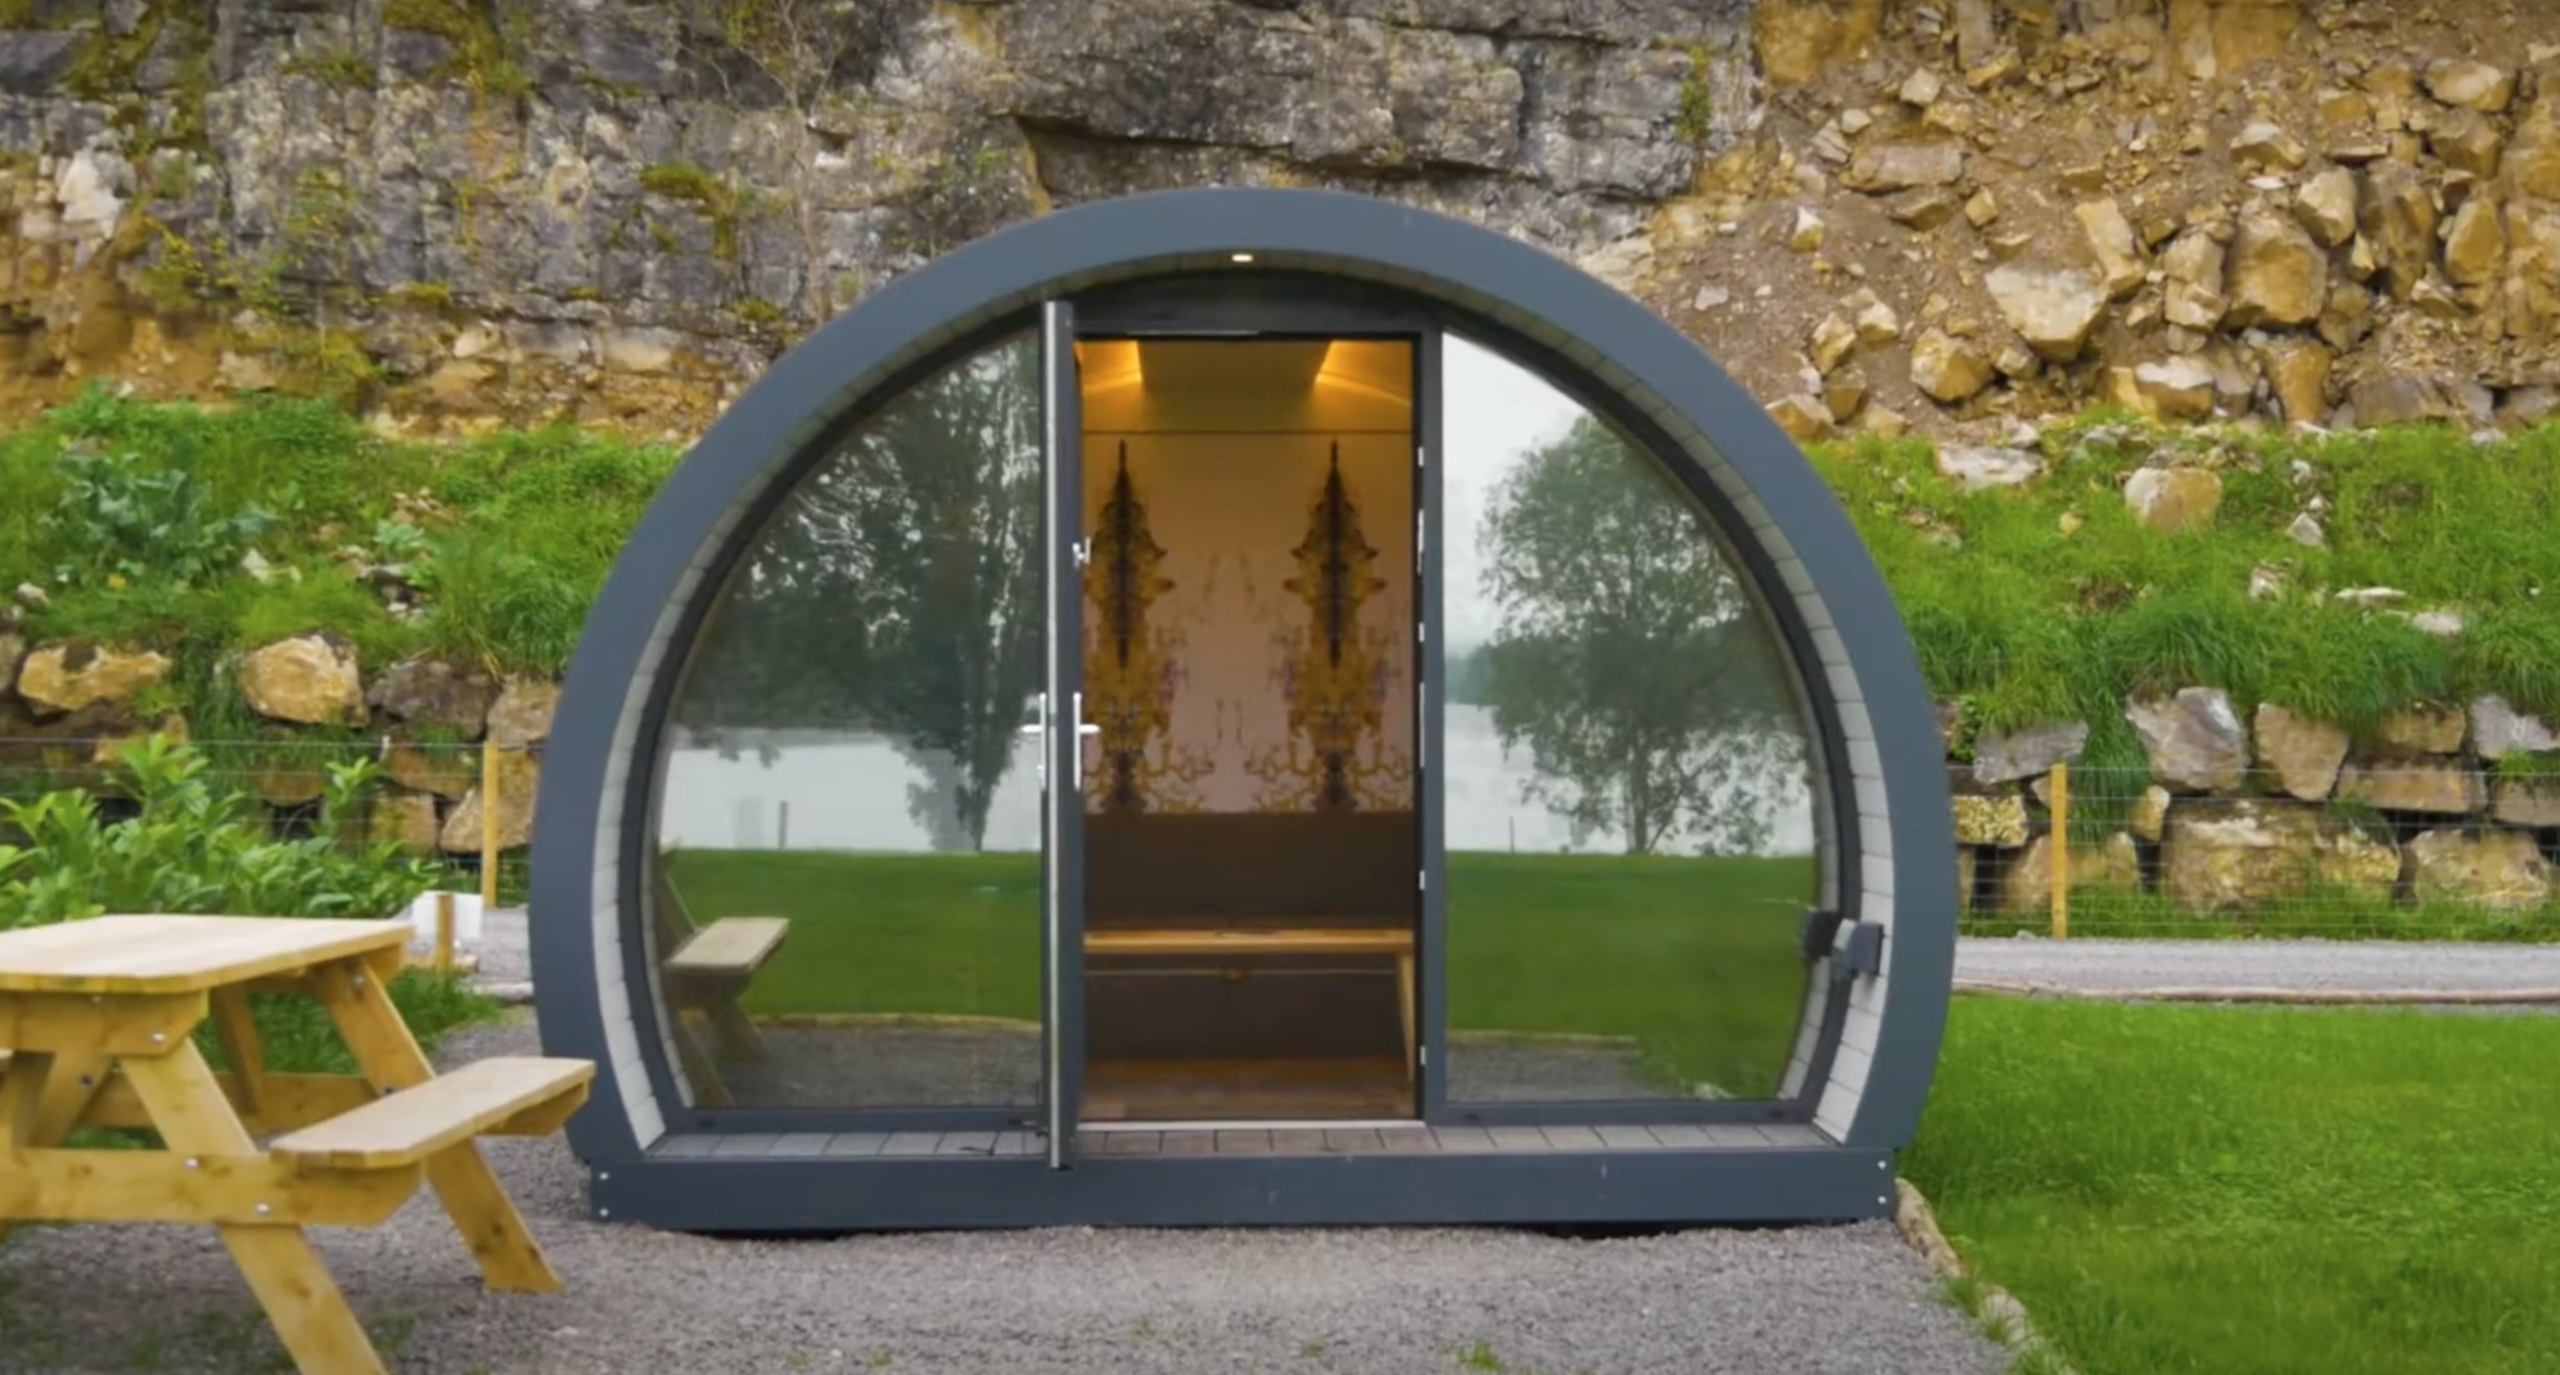 Lough Erne Camping Pods